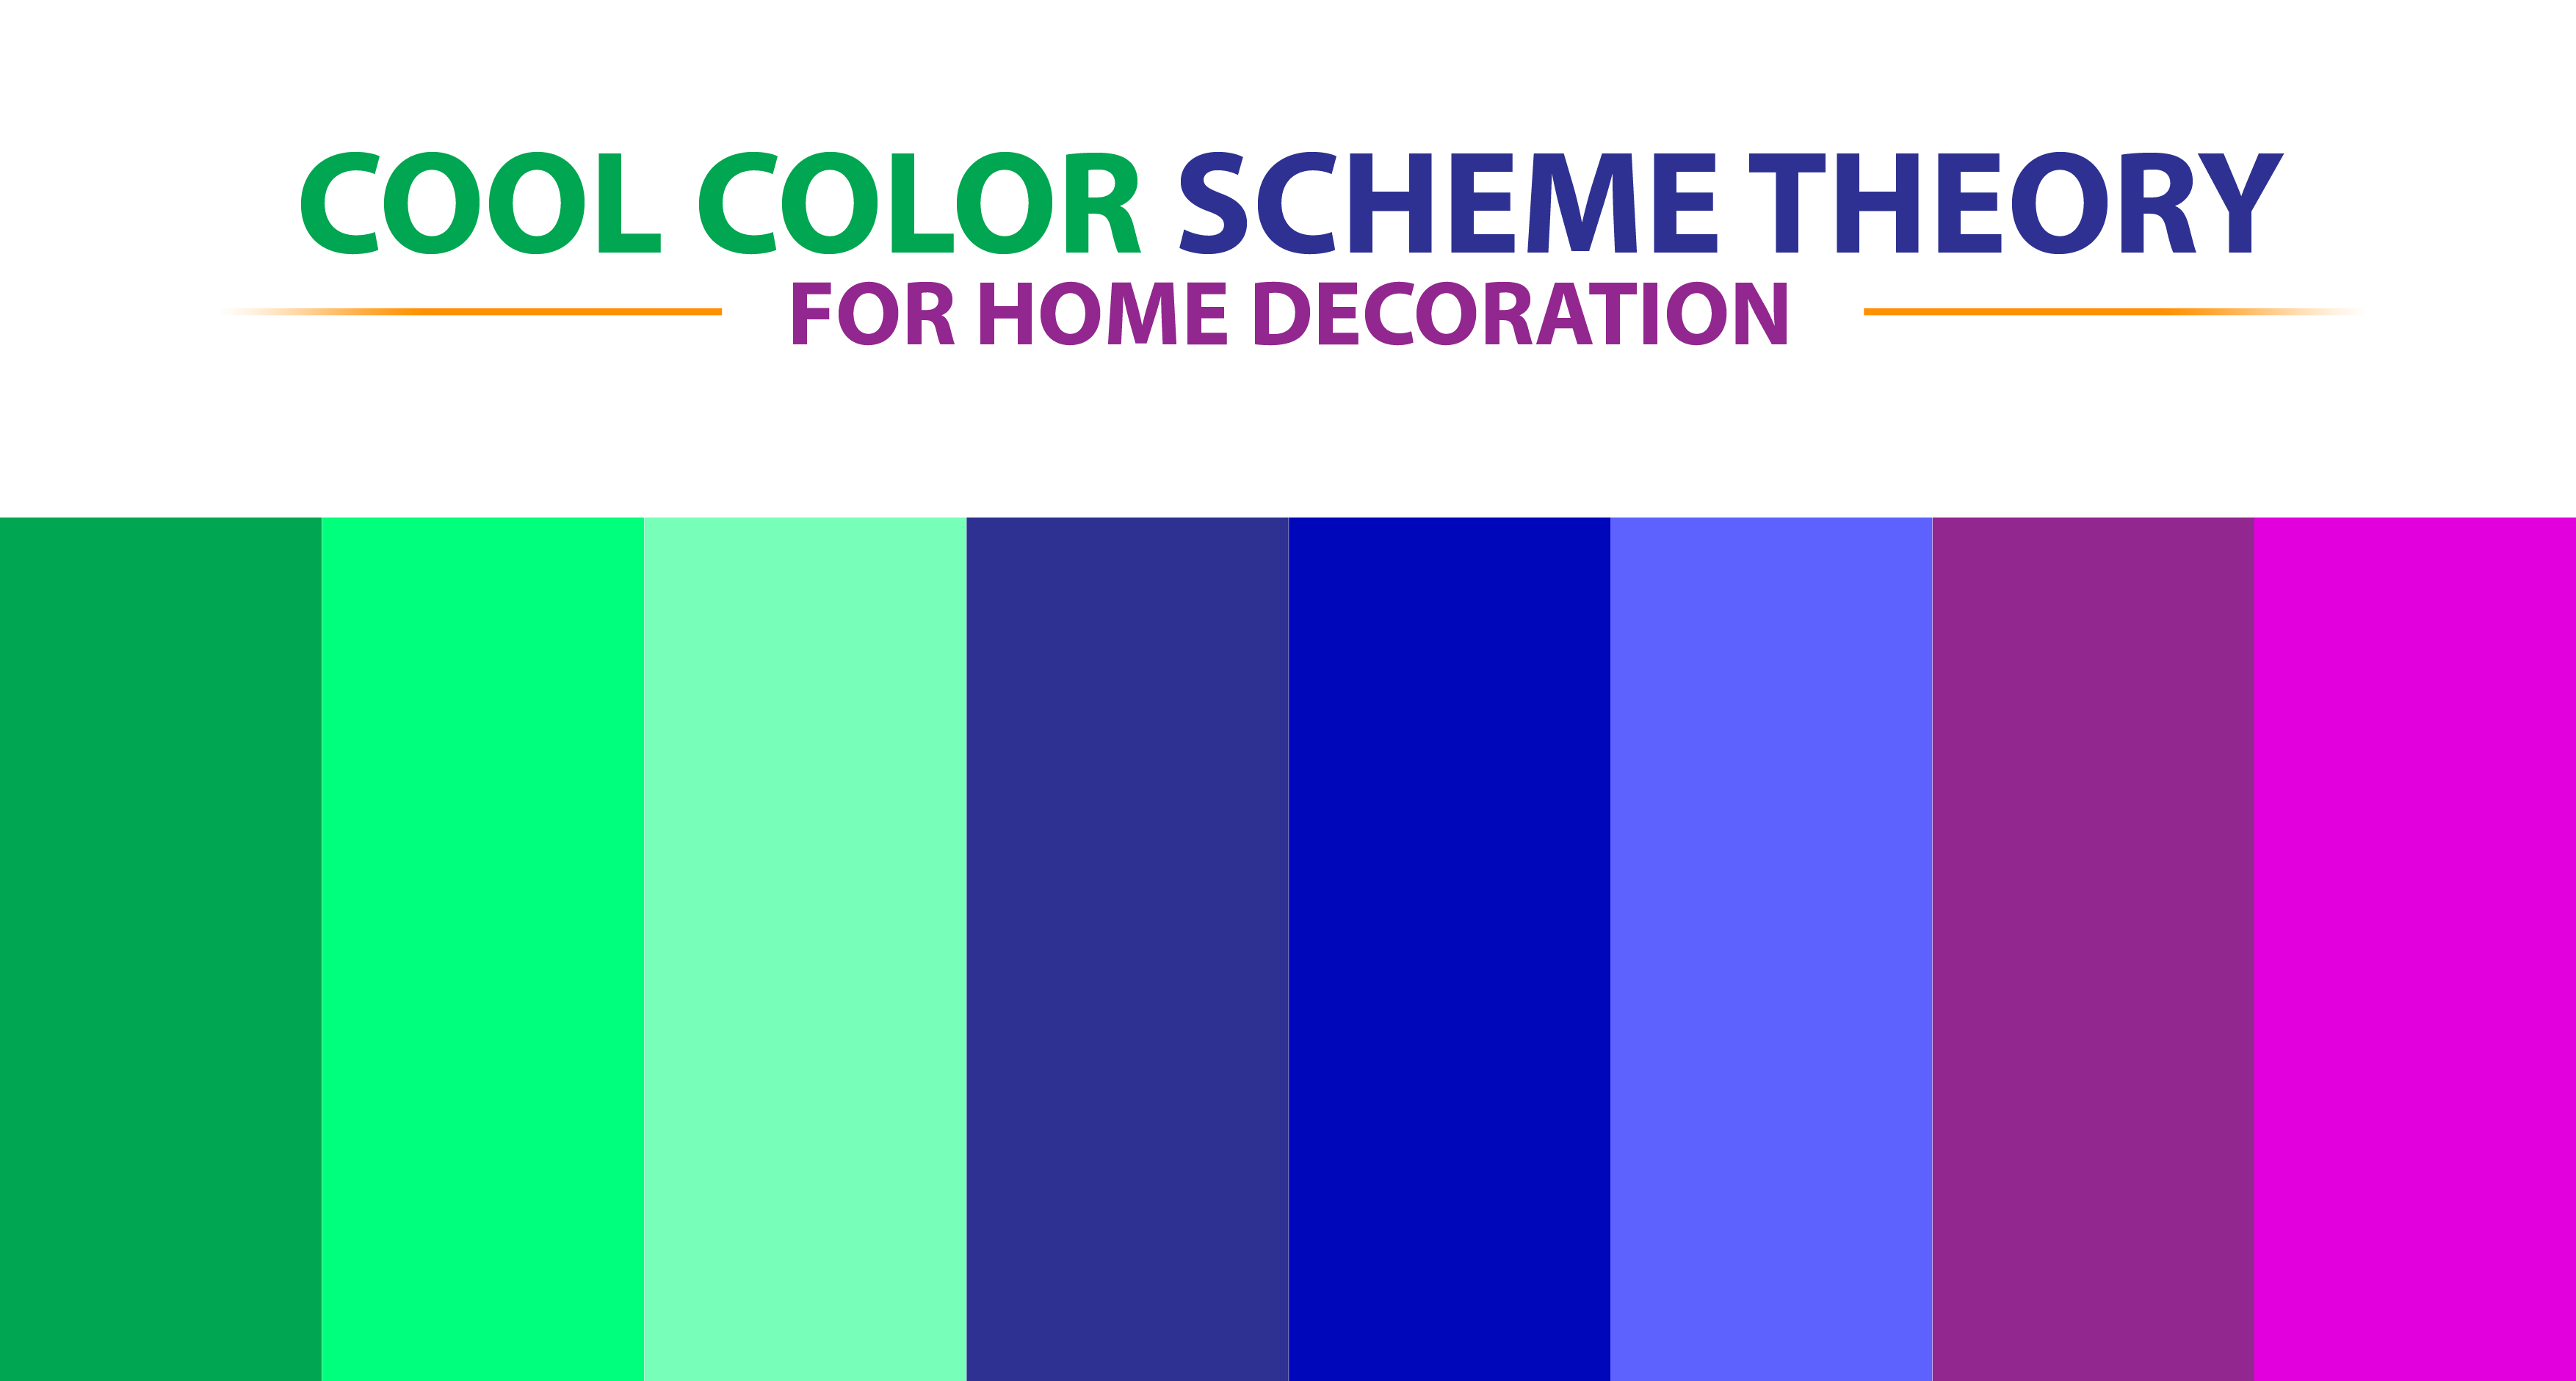 cool color scheme theory for home decoration to combine matching color palette from the colour wheel